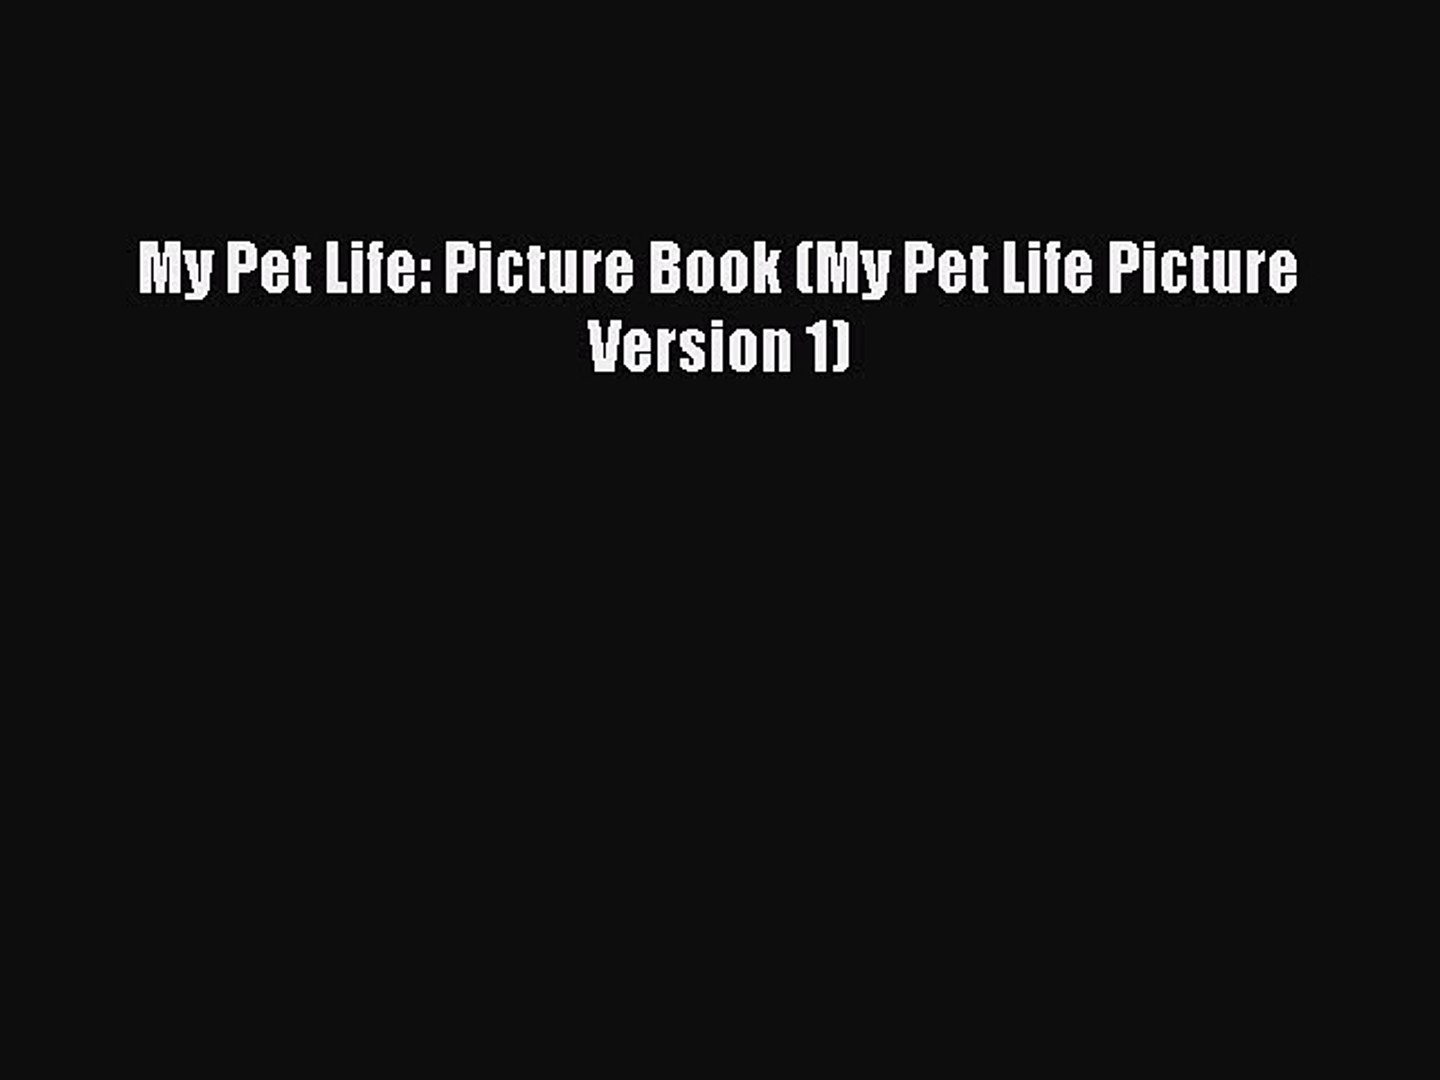 Download My Pet Life: Picture Book (My Pet Life Picture Version 1)  Read Online